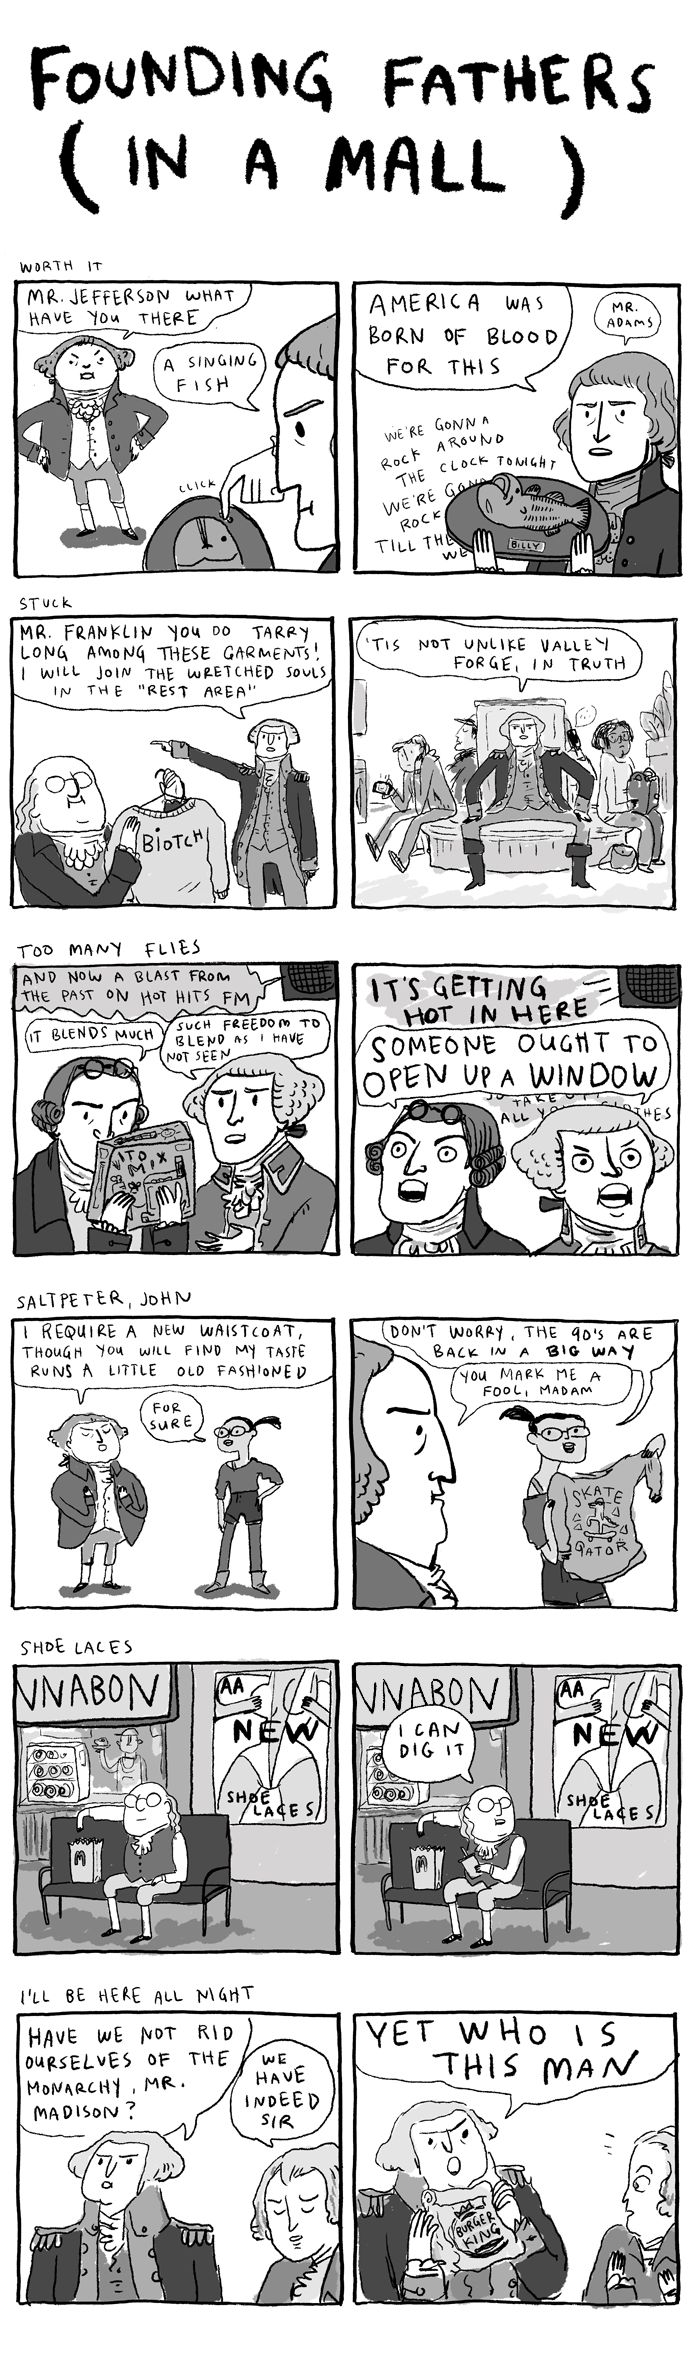 Founding Fathers in a mall by Kate Beaton.